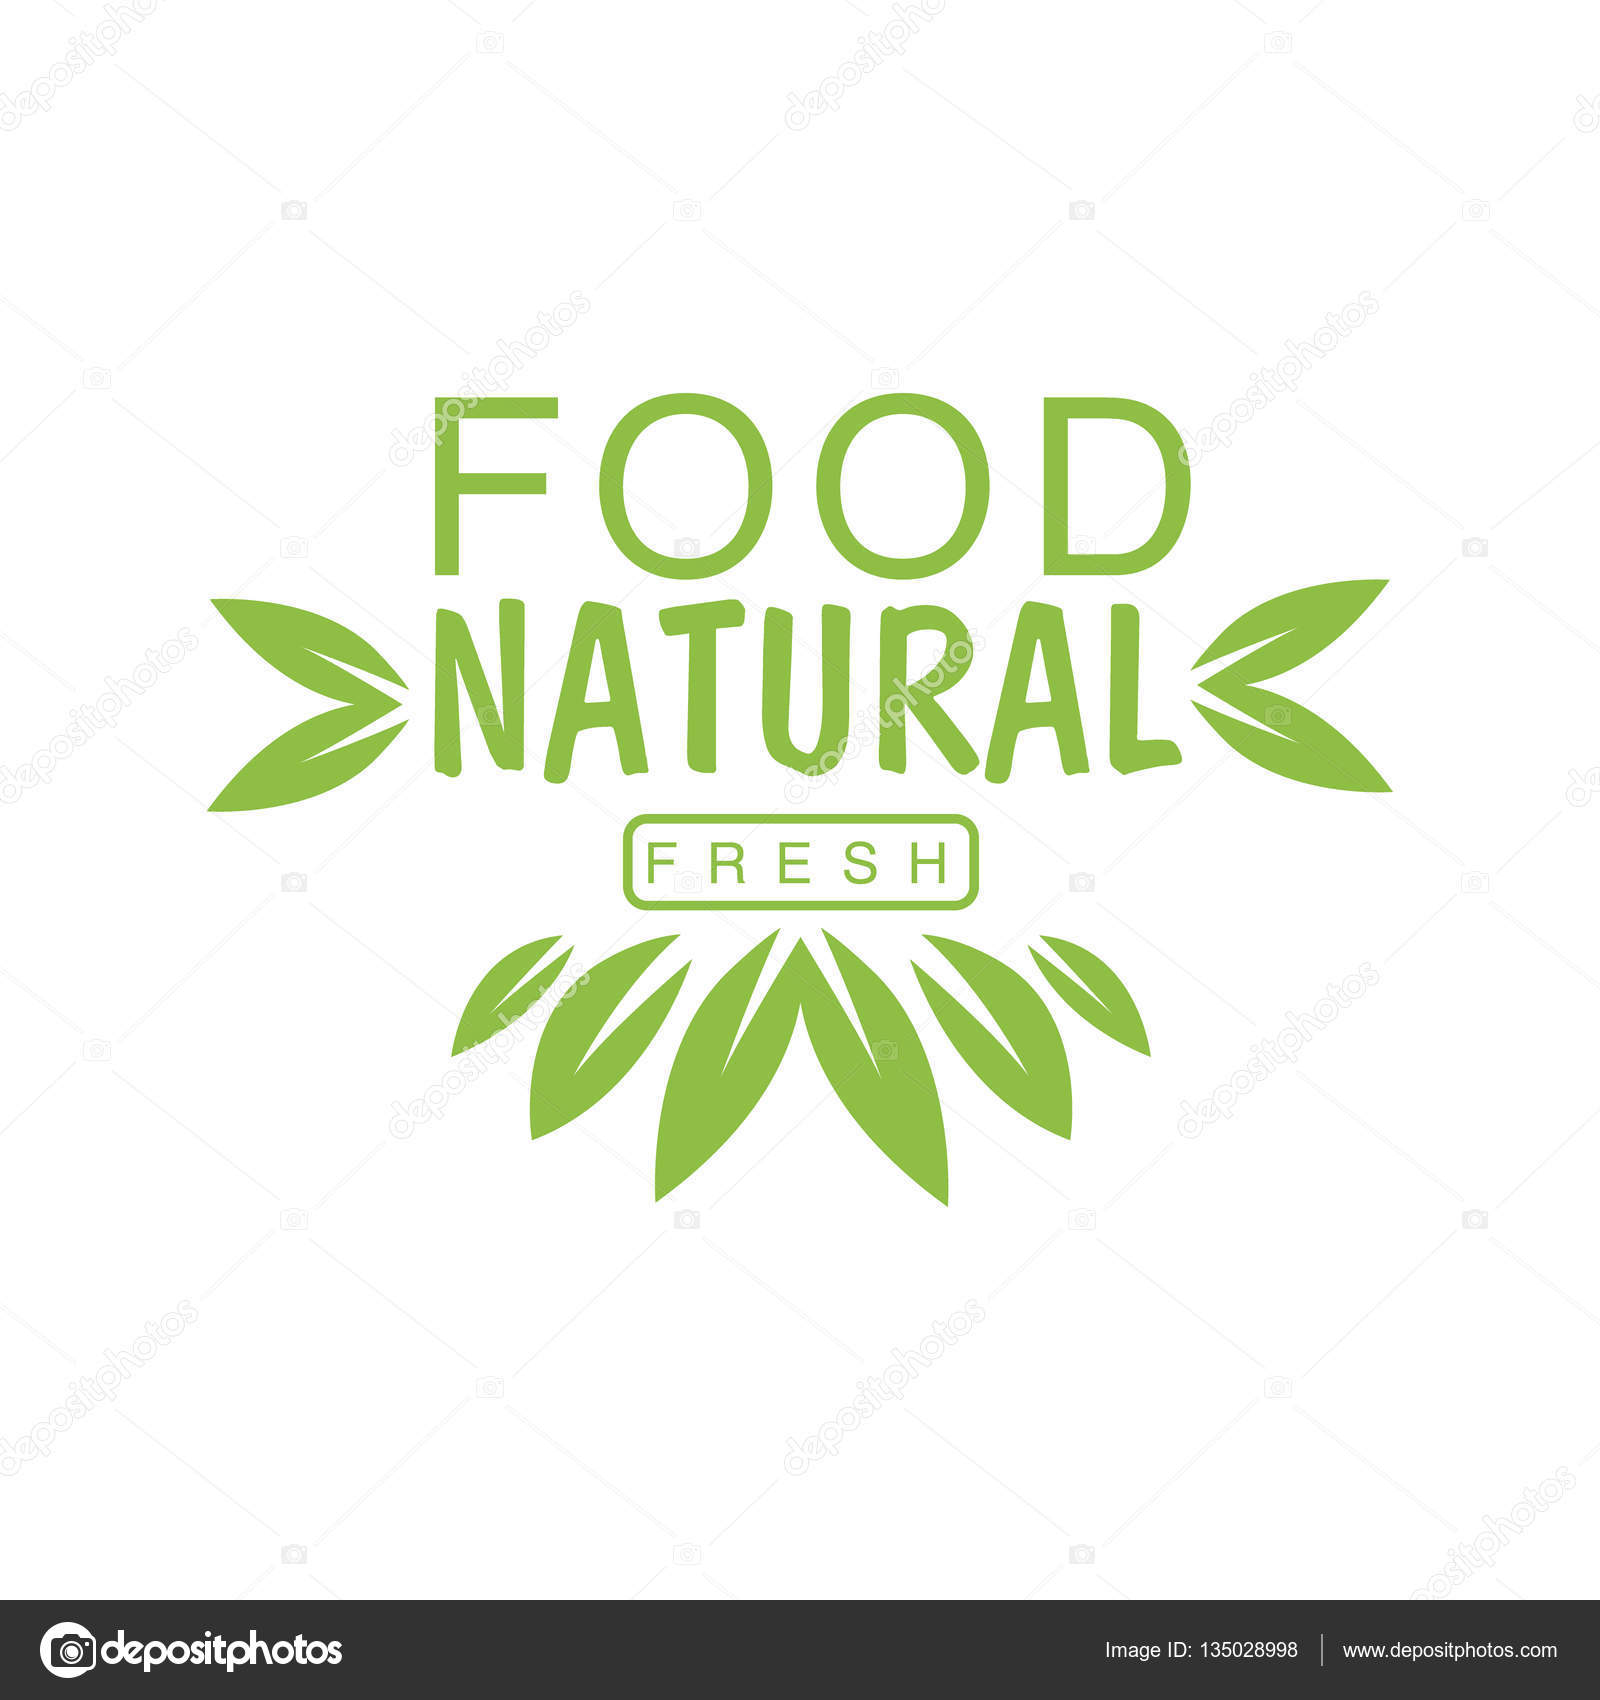 vegan natural food green logo design template with crown of leaves